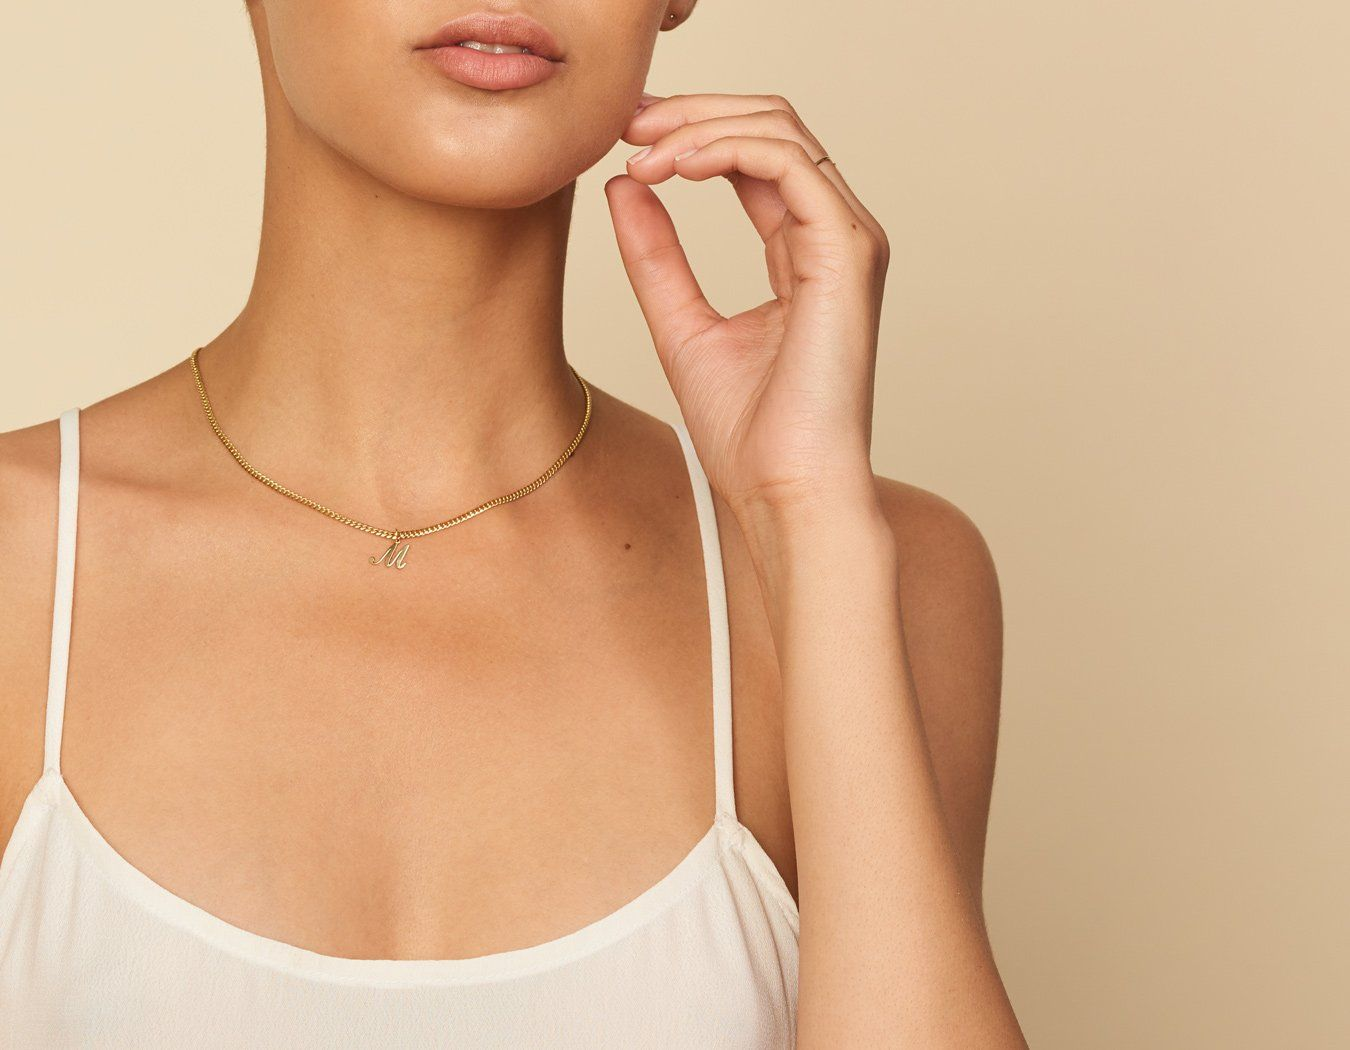 7a455bc45cfd ... design in solid gold. M Letter Pendant on Oval link chain necklace by  Vrai and Oro